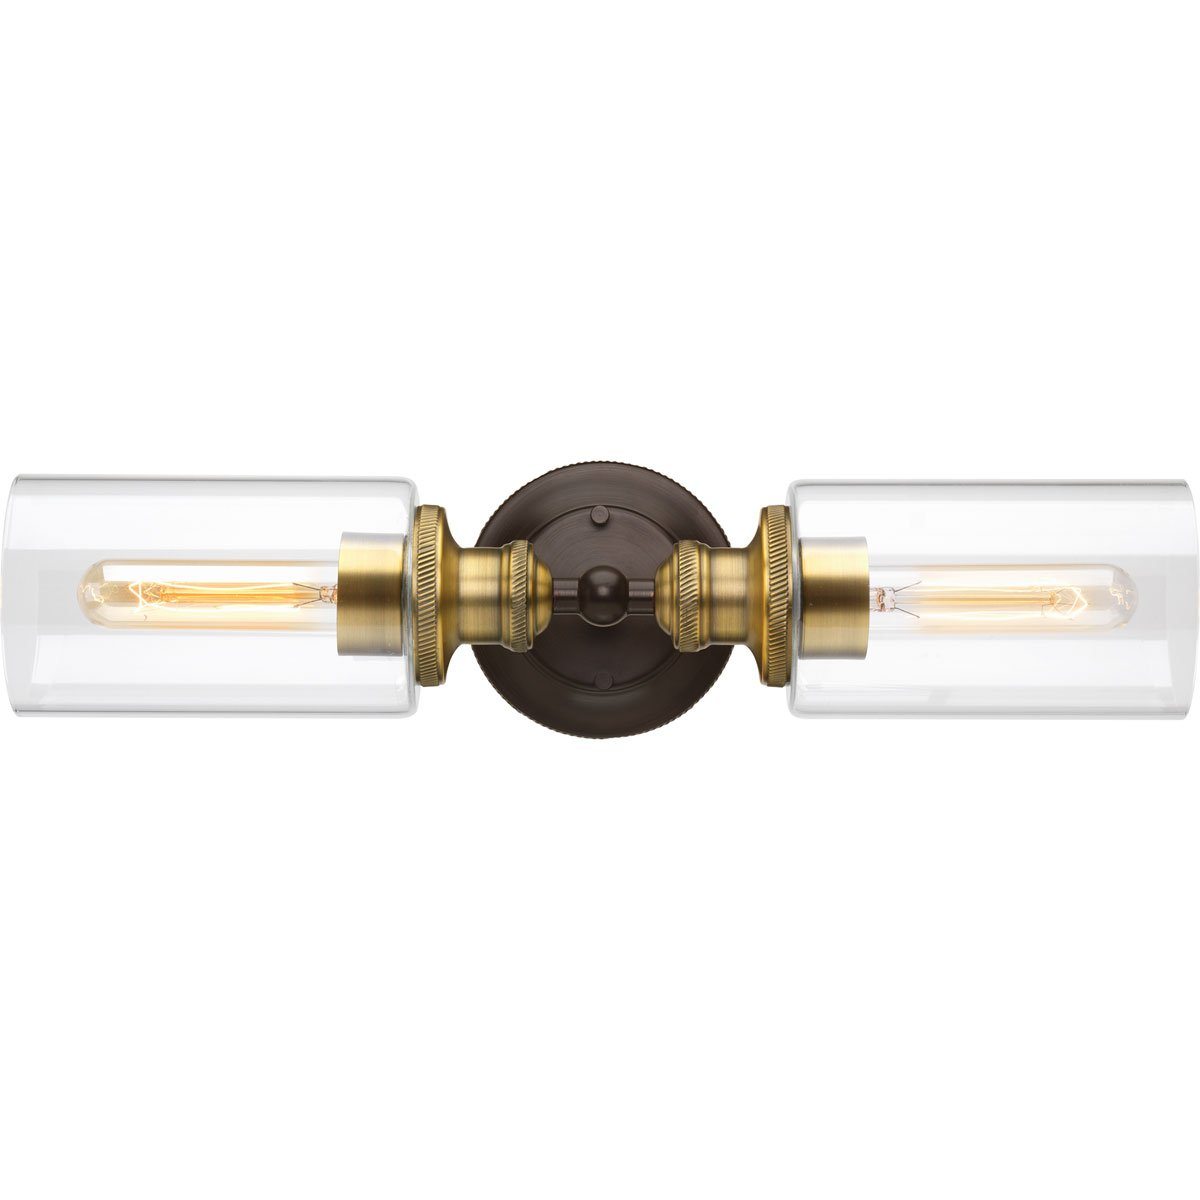 Progress Lighting P2809-20 Traditional/Classic 2-100W Med Bath Bracket, Antique Bronze by Progress Lighting